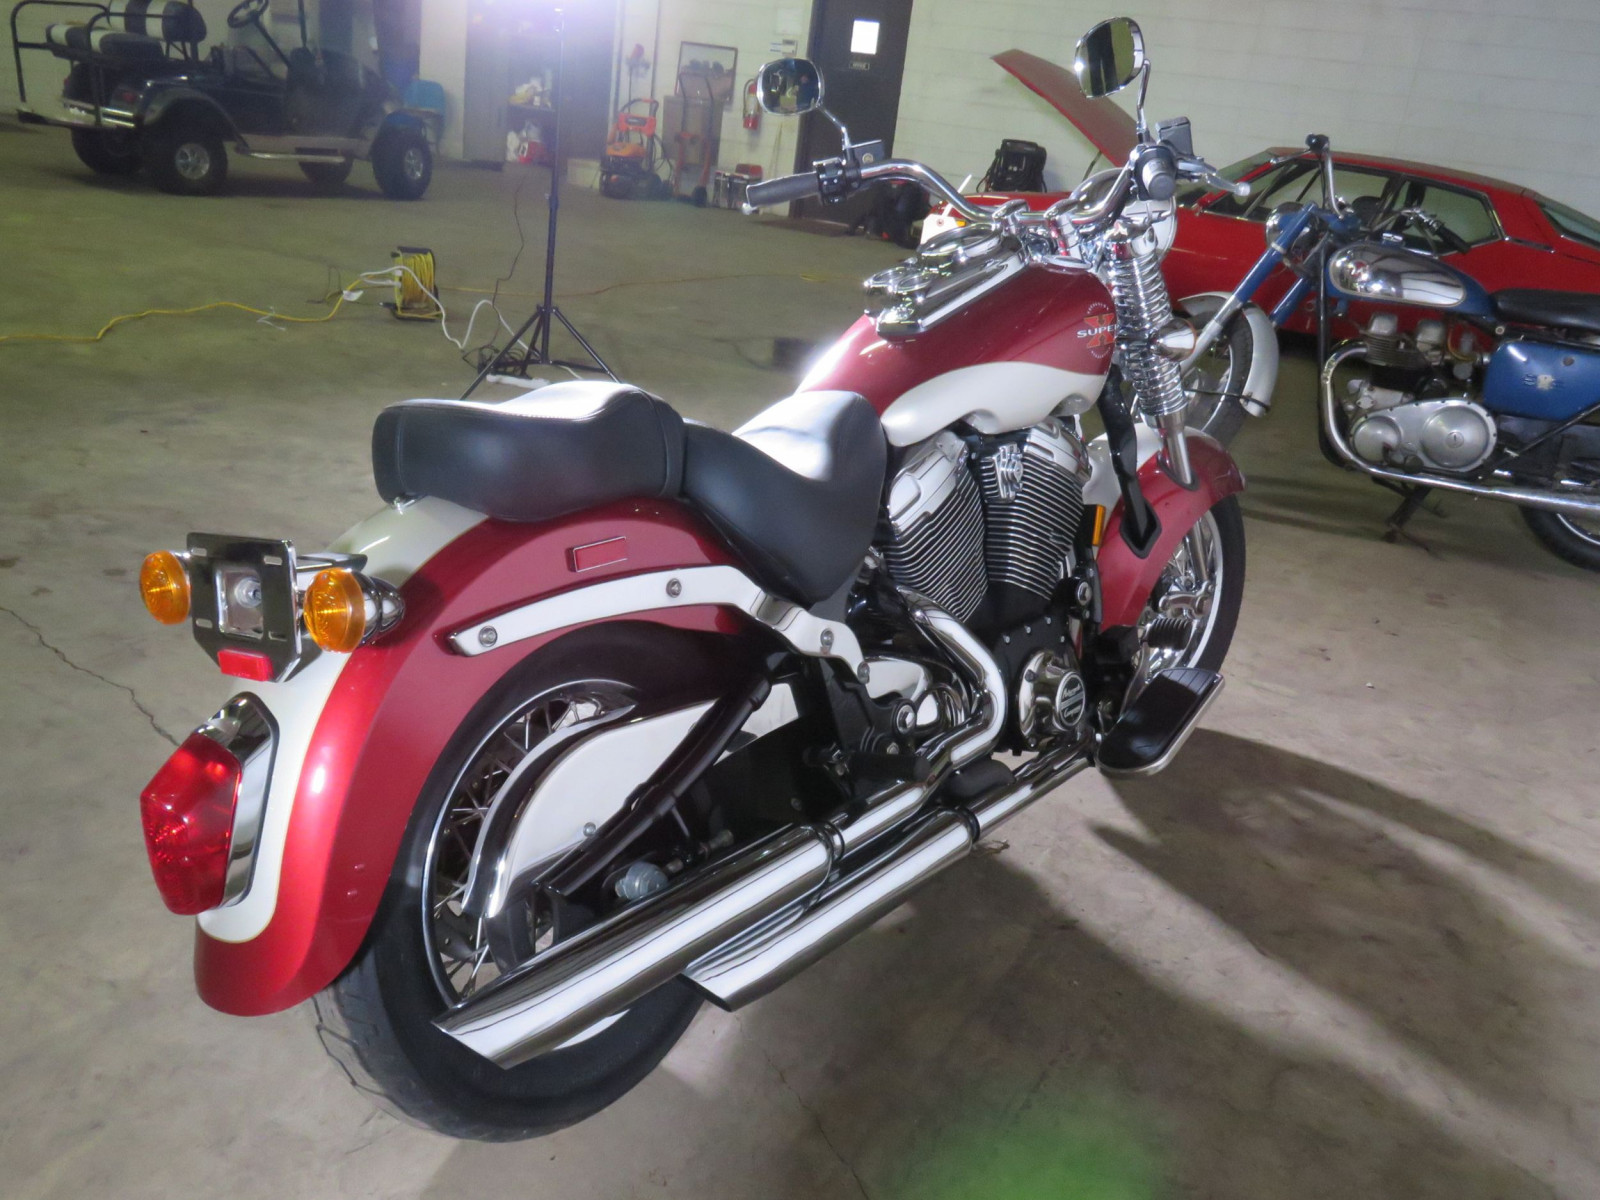 1999 Excelsior Henderson Super X Motorcycle - Image 6